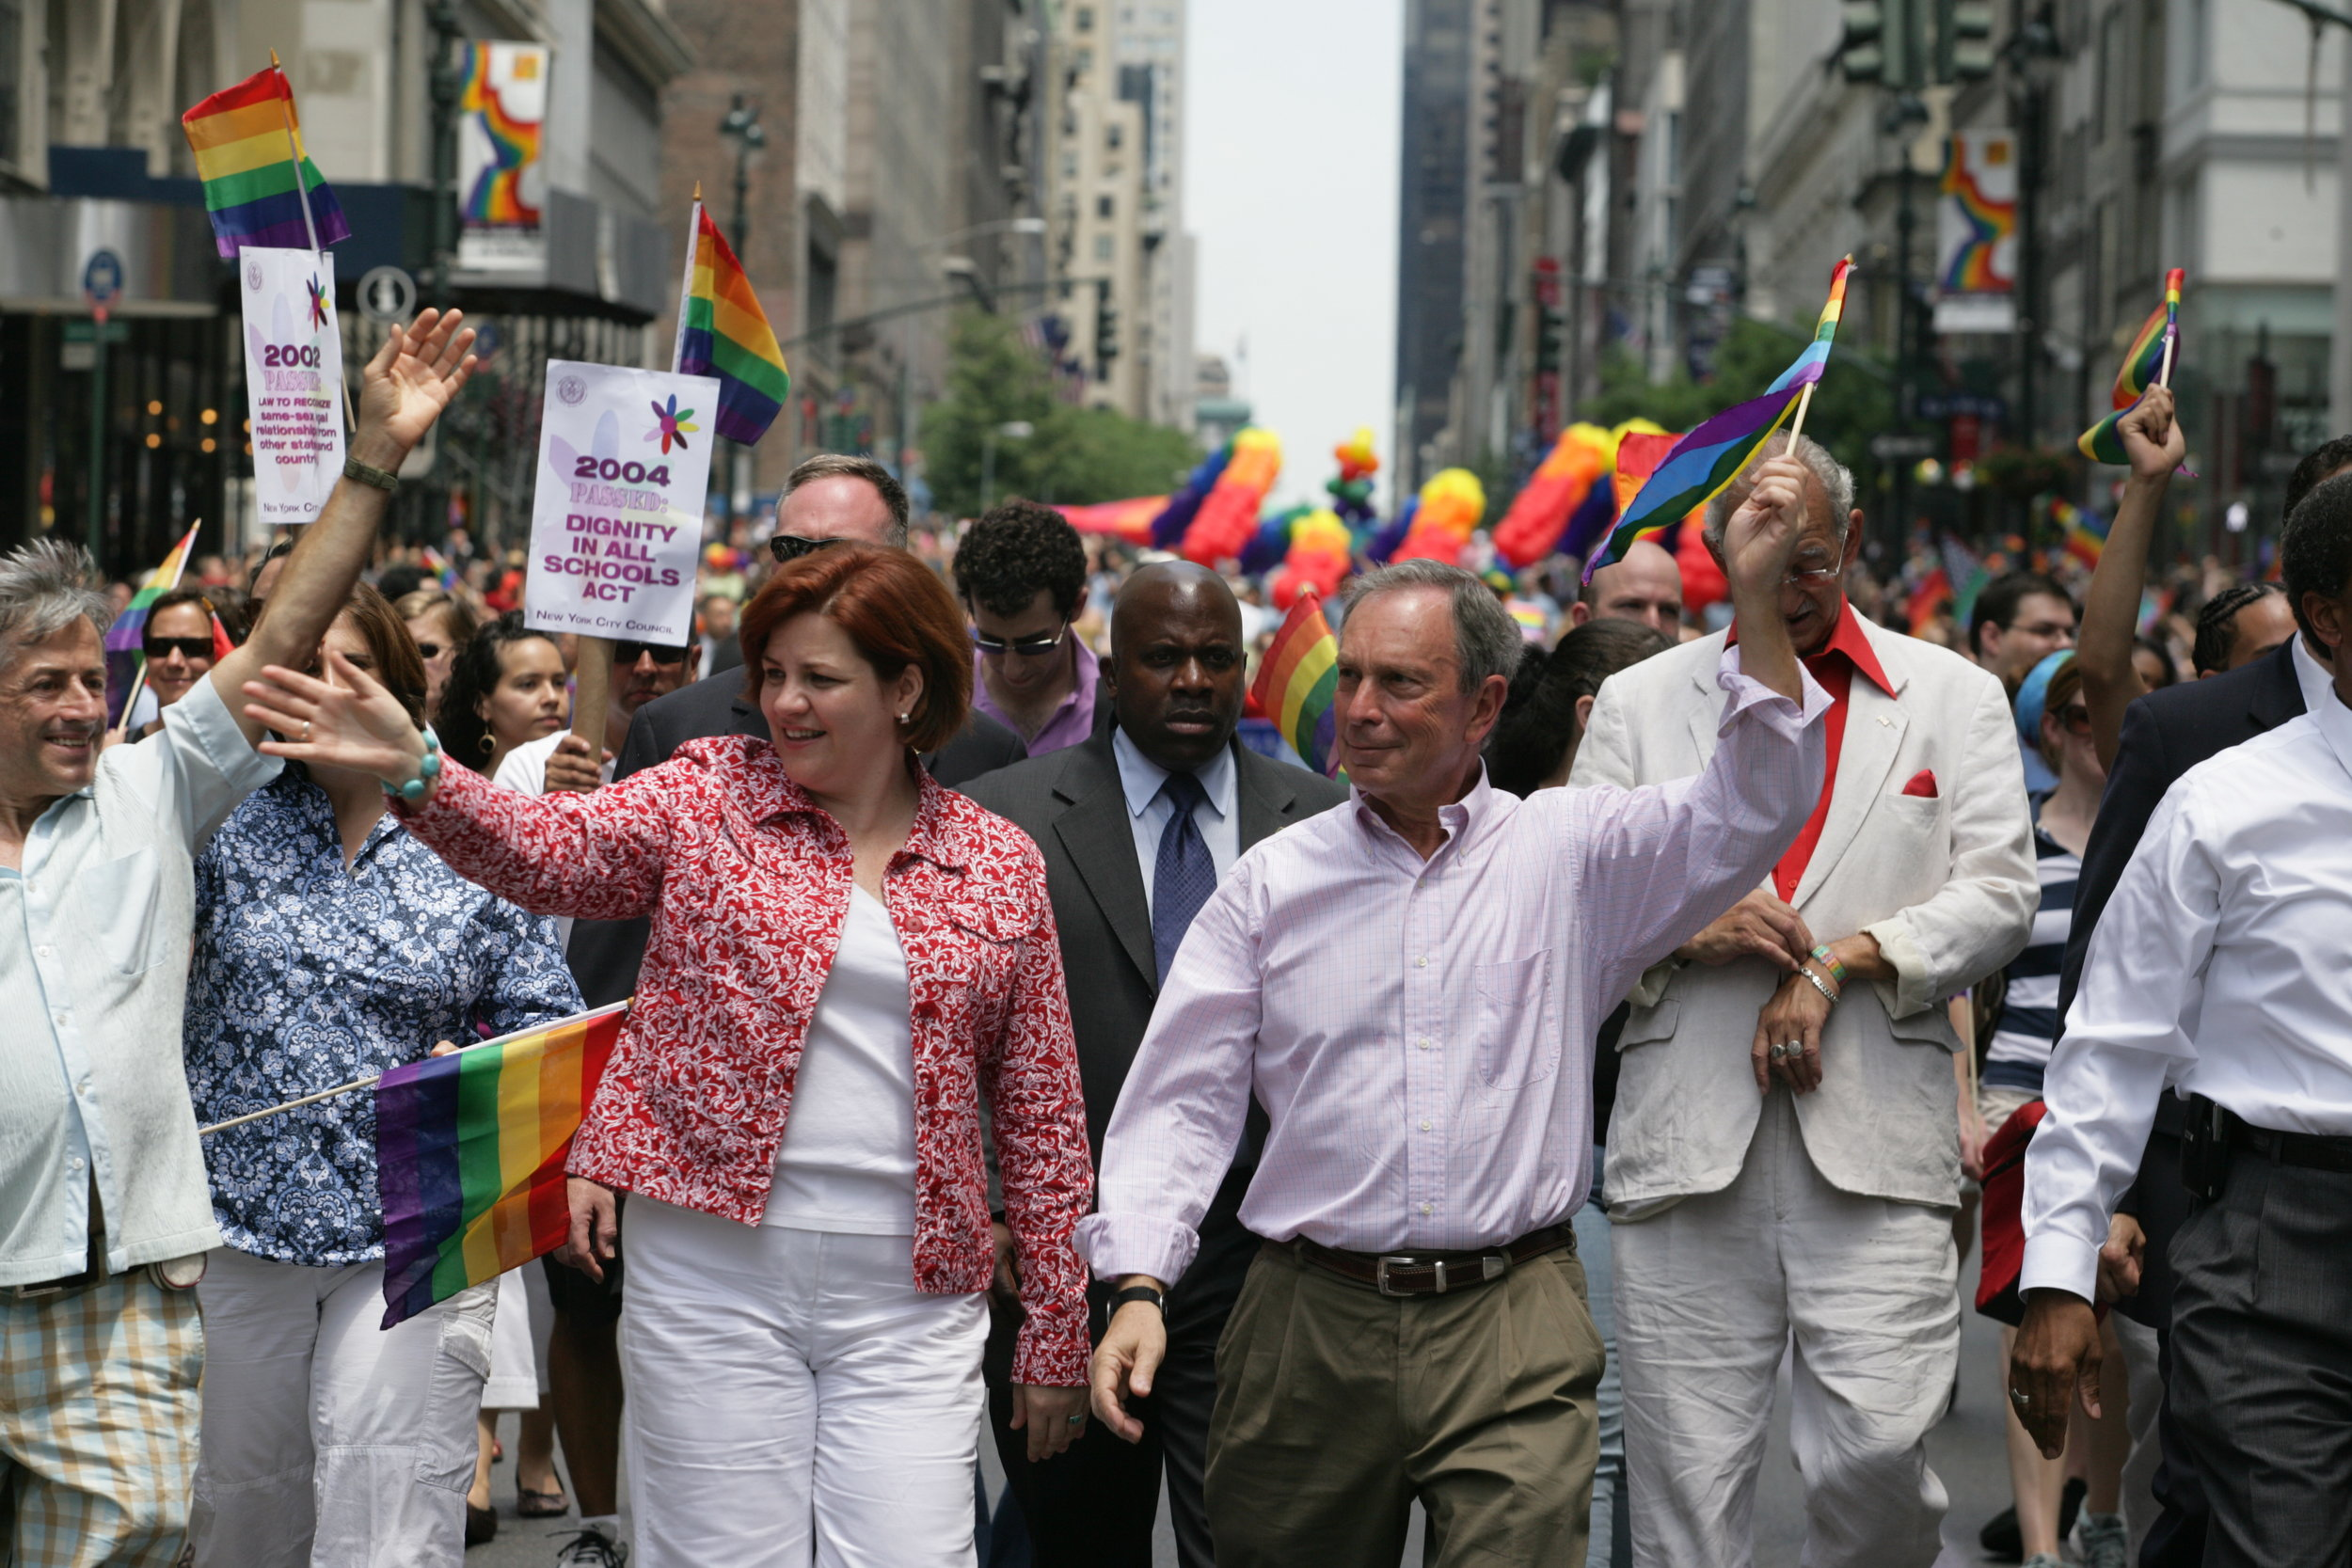 Mayor Bloomberg marched with City Council Speaker Christine Quinn in the 2008 Gay Pride parade. June 29, 2008. Mayor Michael R. Bloomberg Collection, NYC Municipal Archives.